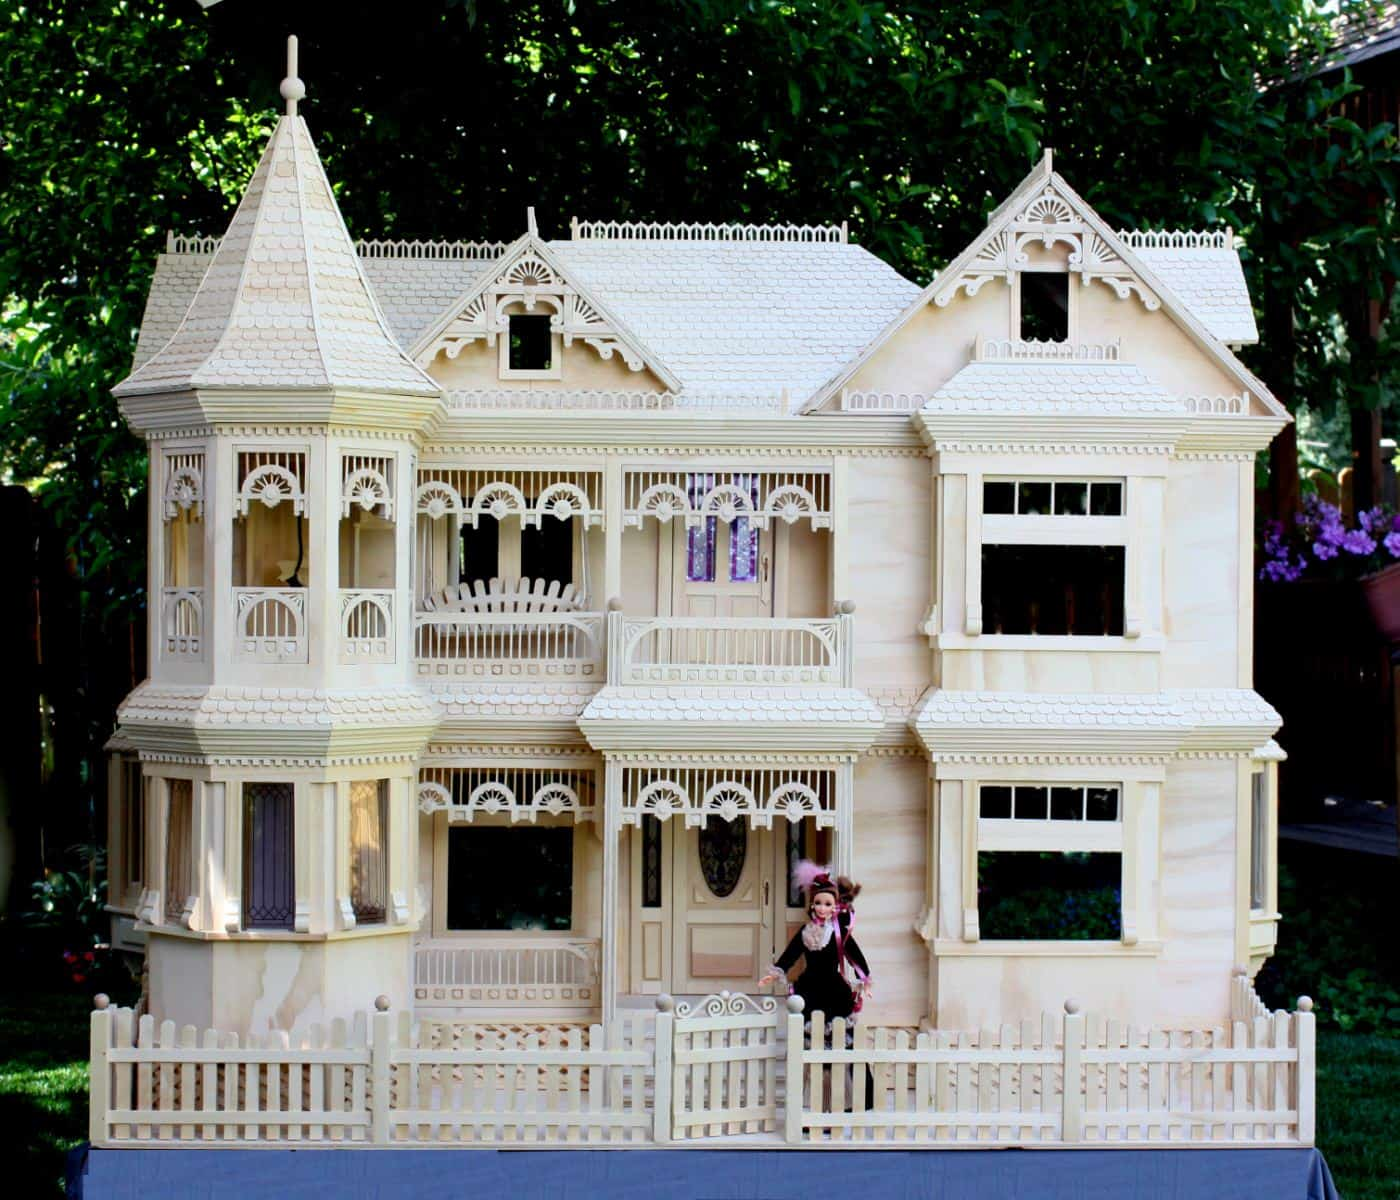 Victorian barbie r house woodworking plan forest street for Building plans houses